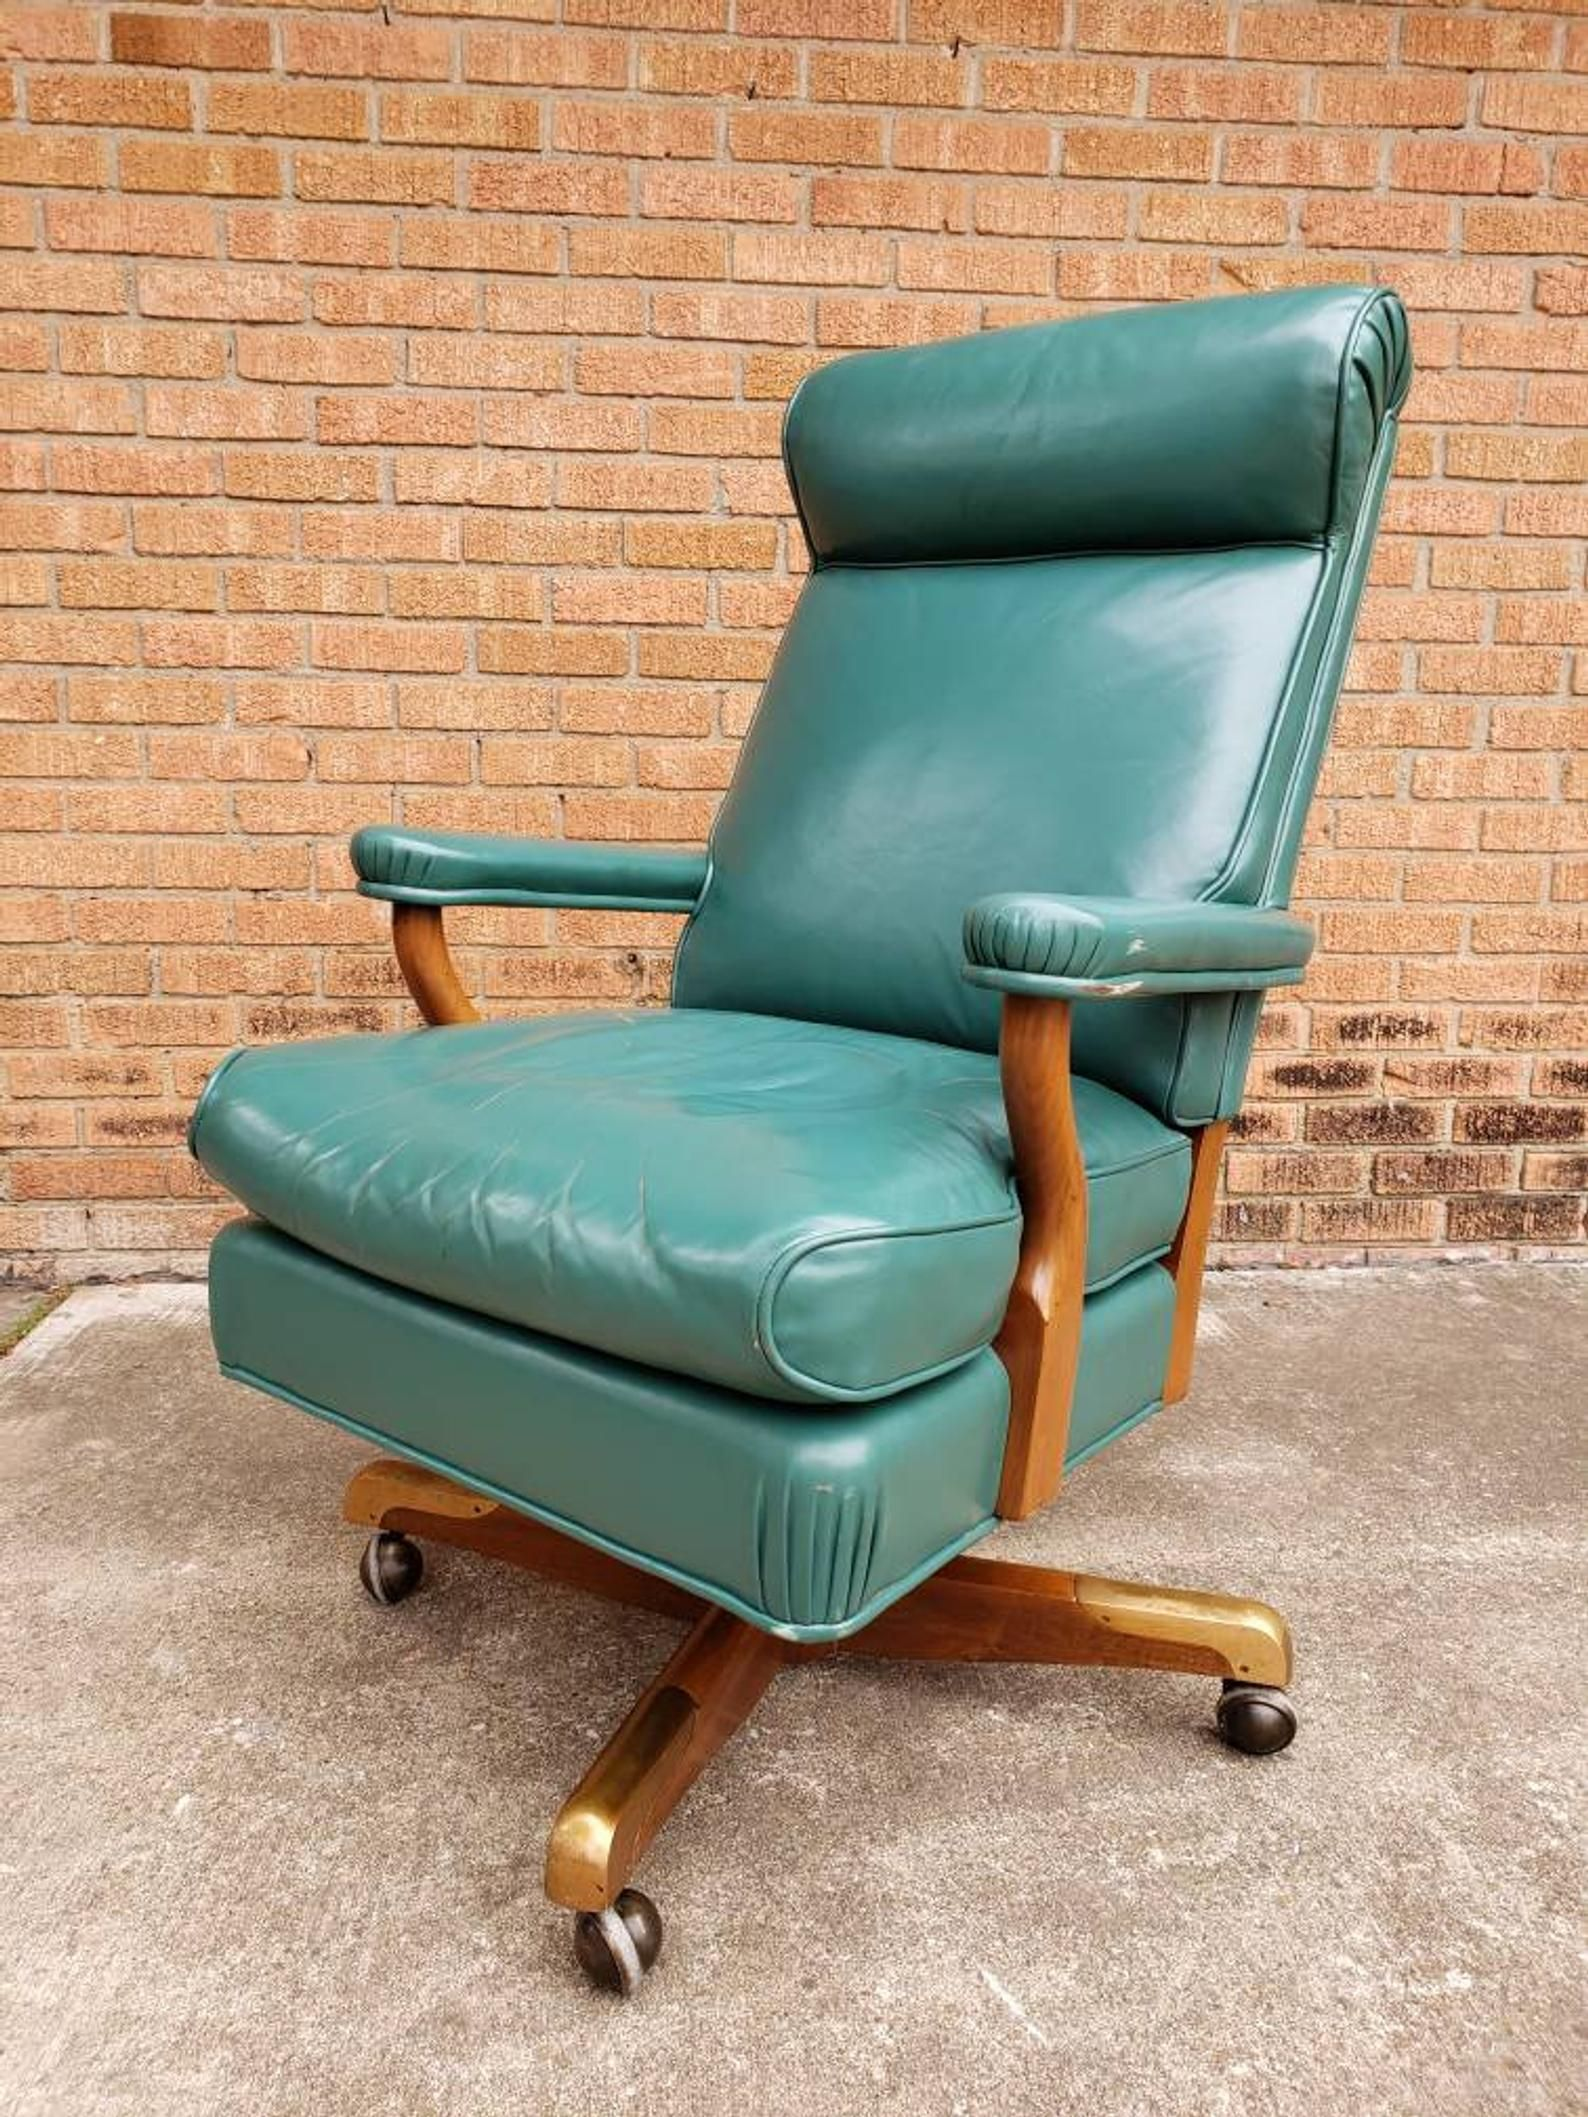 Antique leather walnut executive office chair with